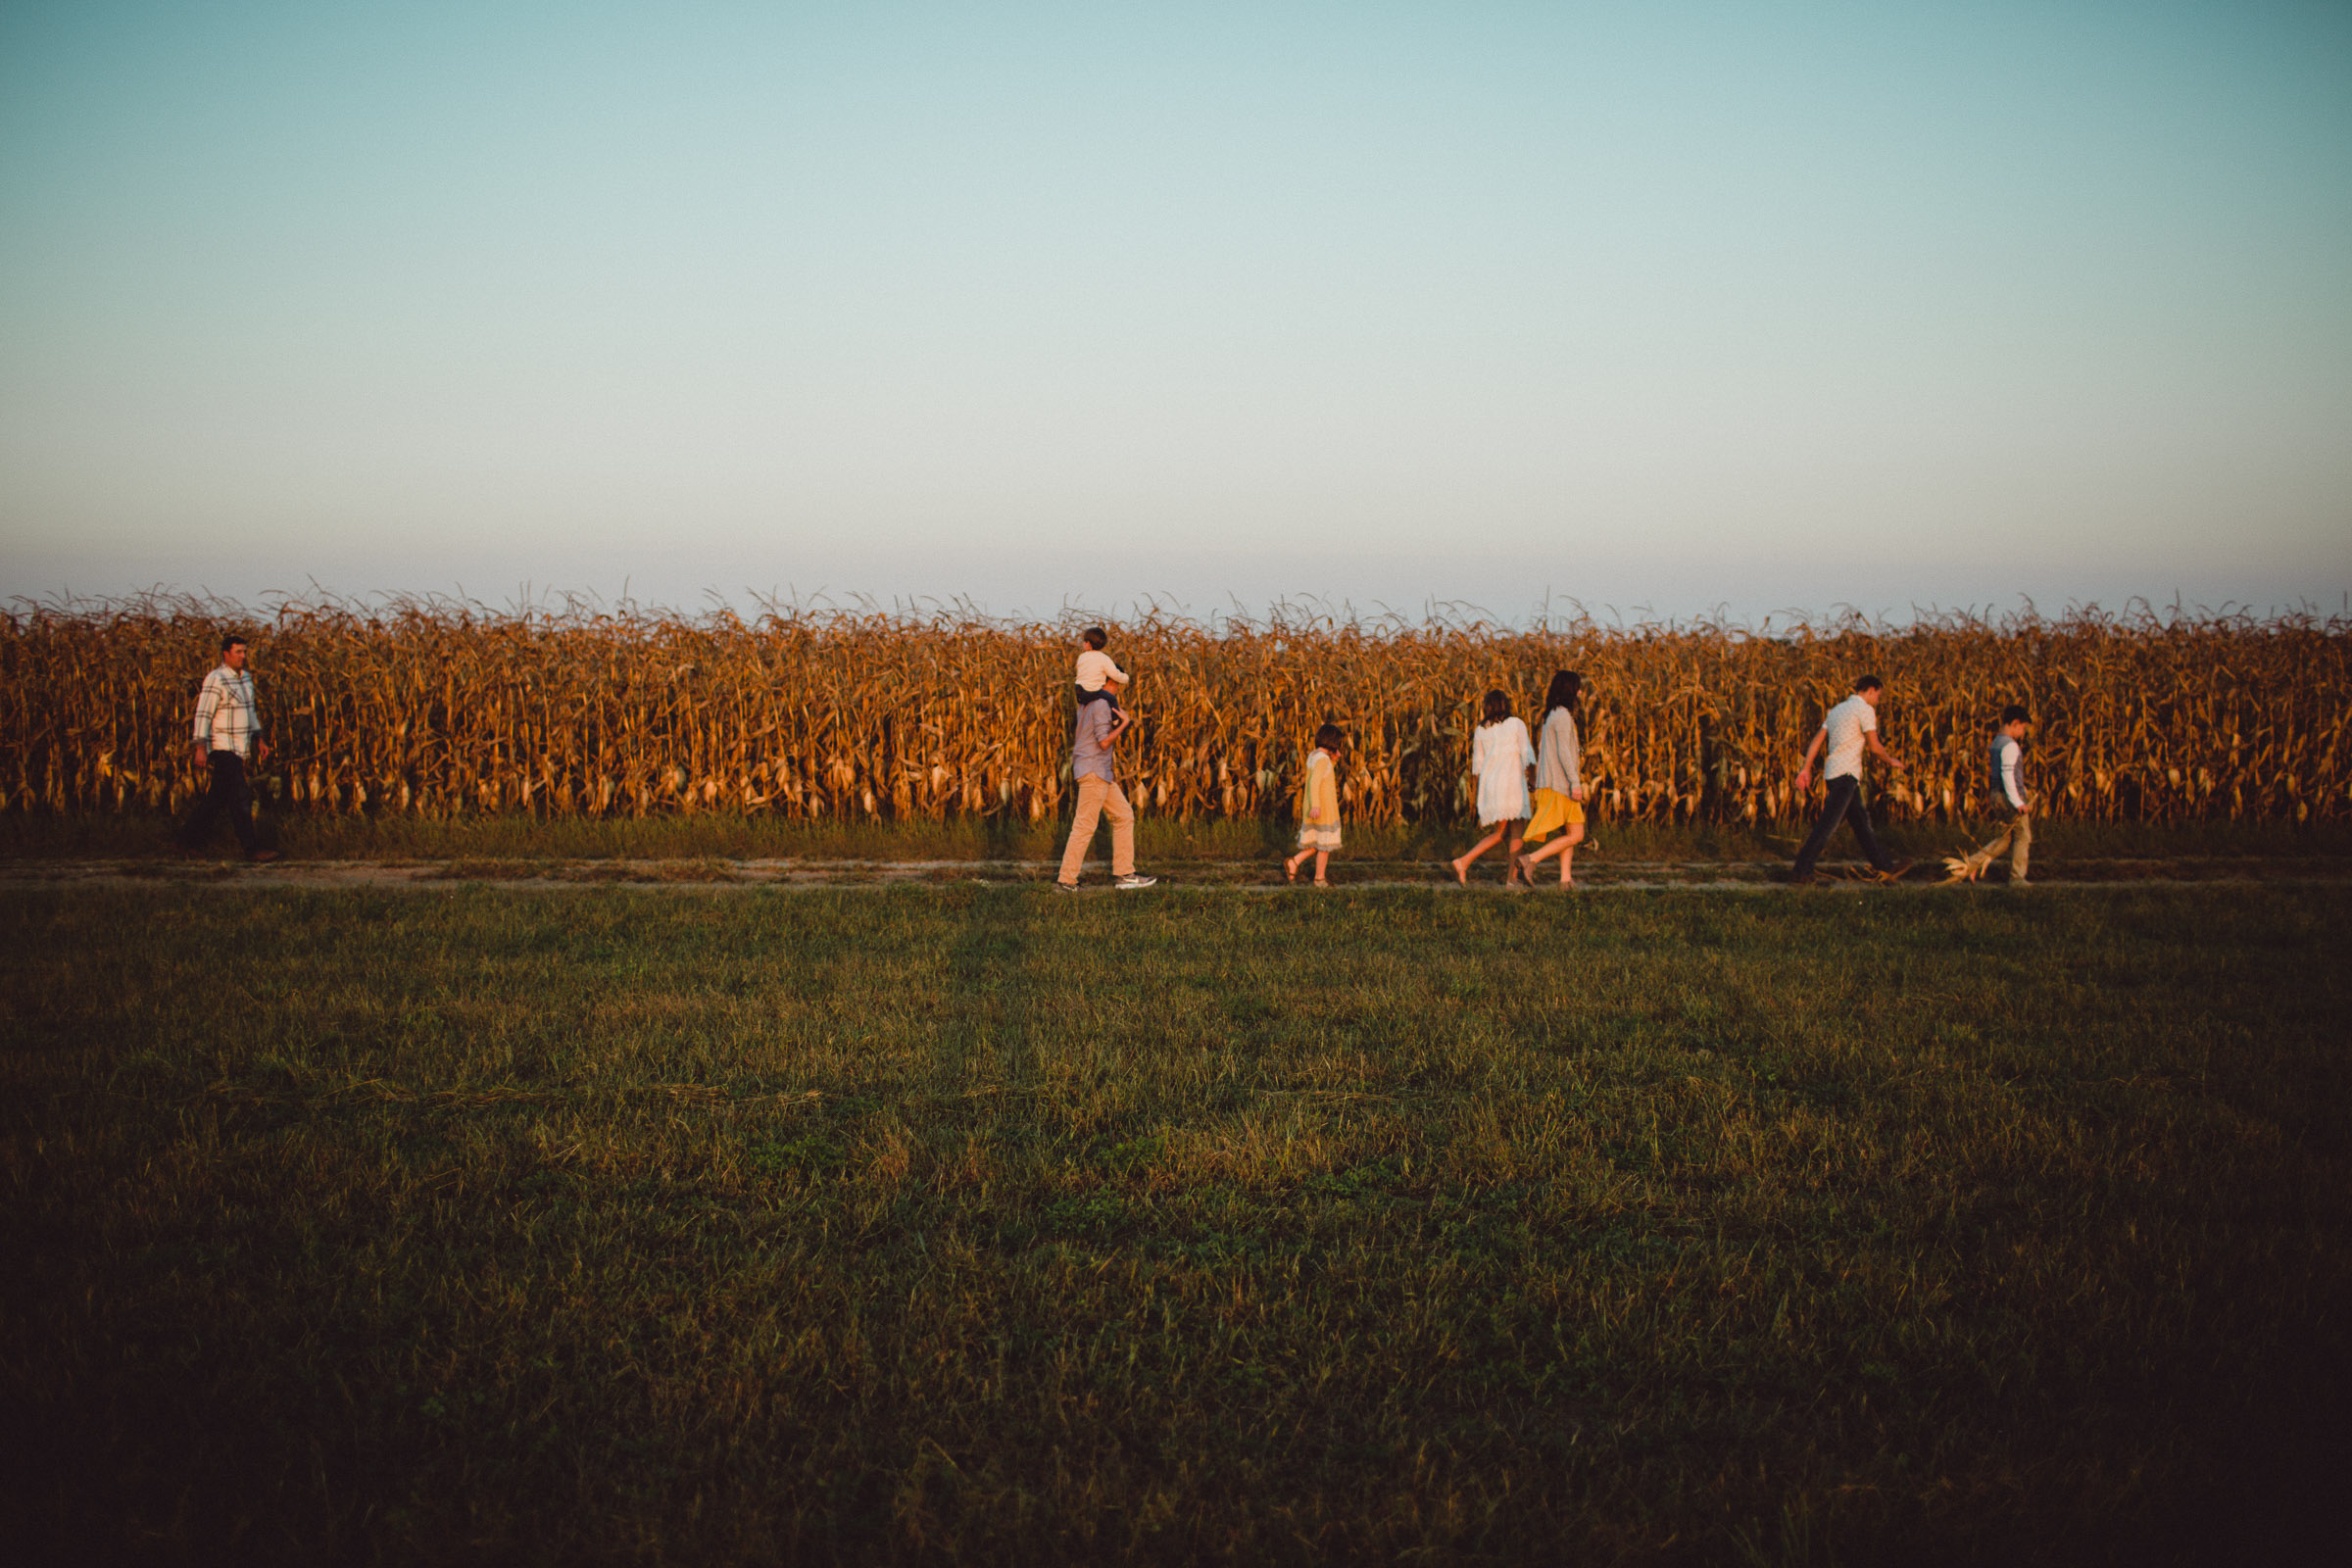 Family walking along a field together